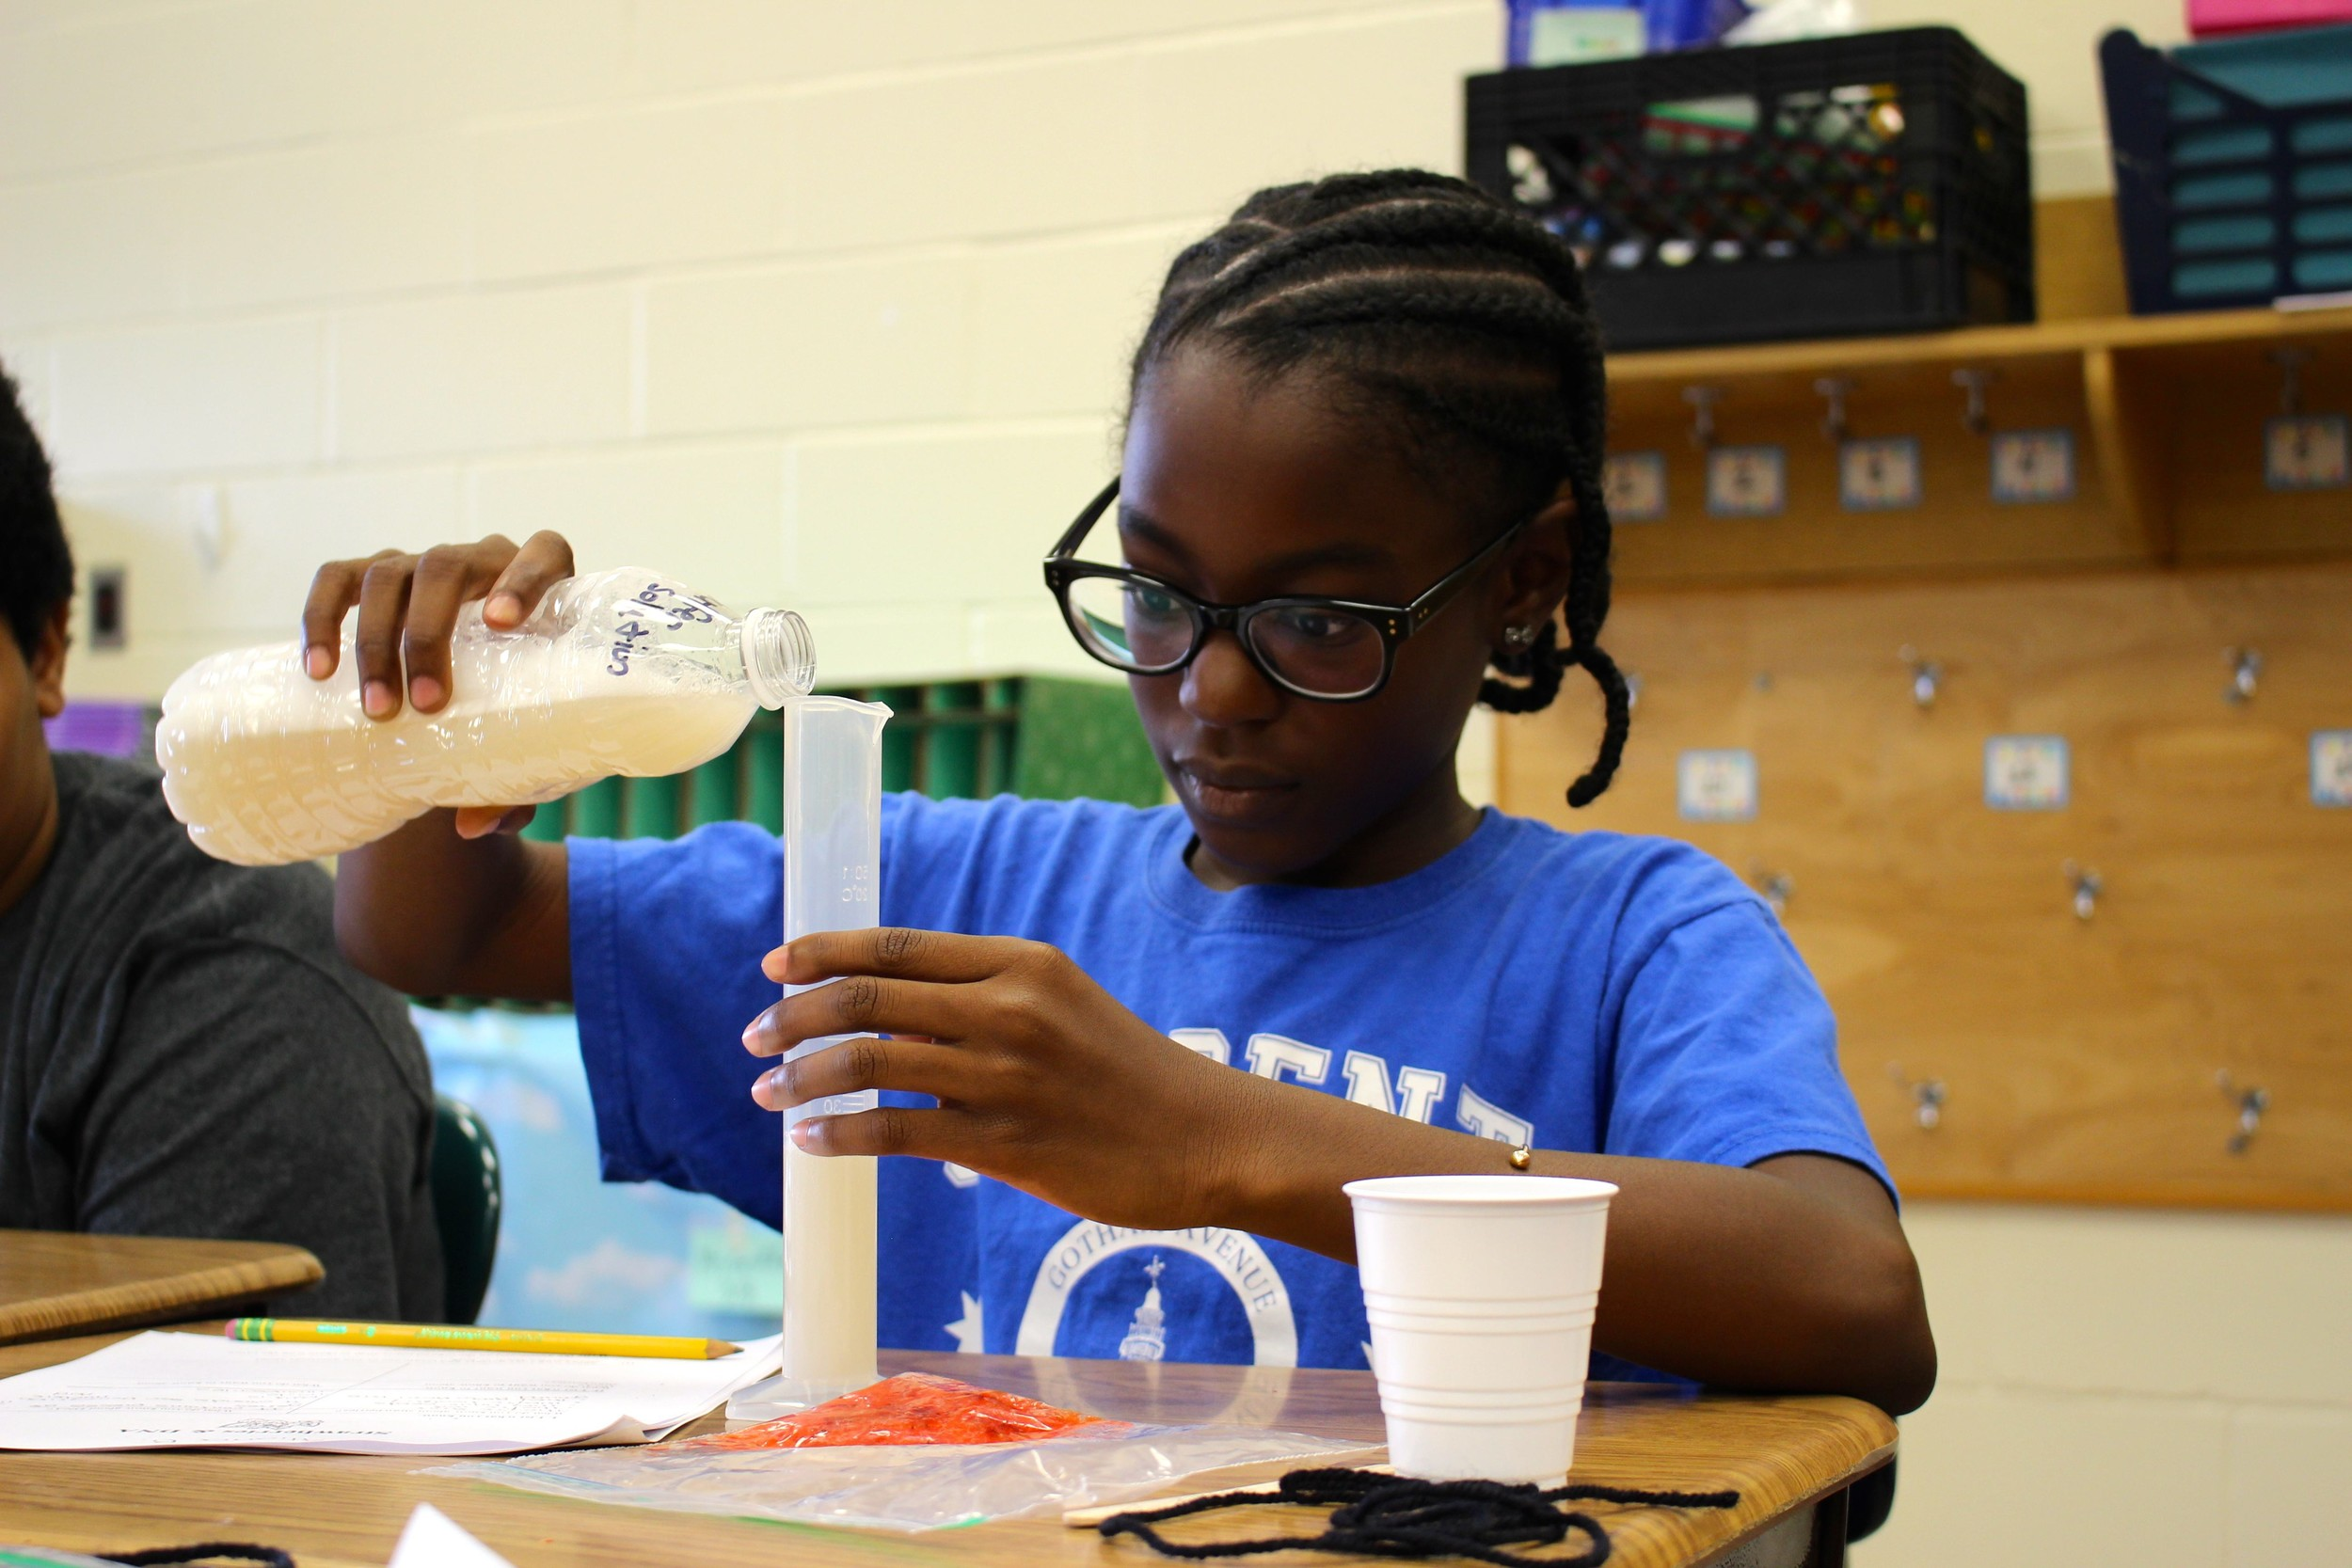 Gotham Avenue School student Aliana Bryan poured a soap and salt mixture into a graduated cylinder to facilitate the extraction.